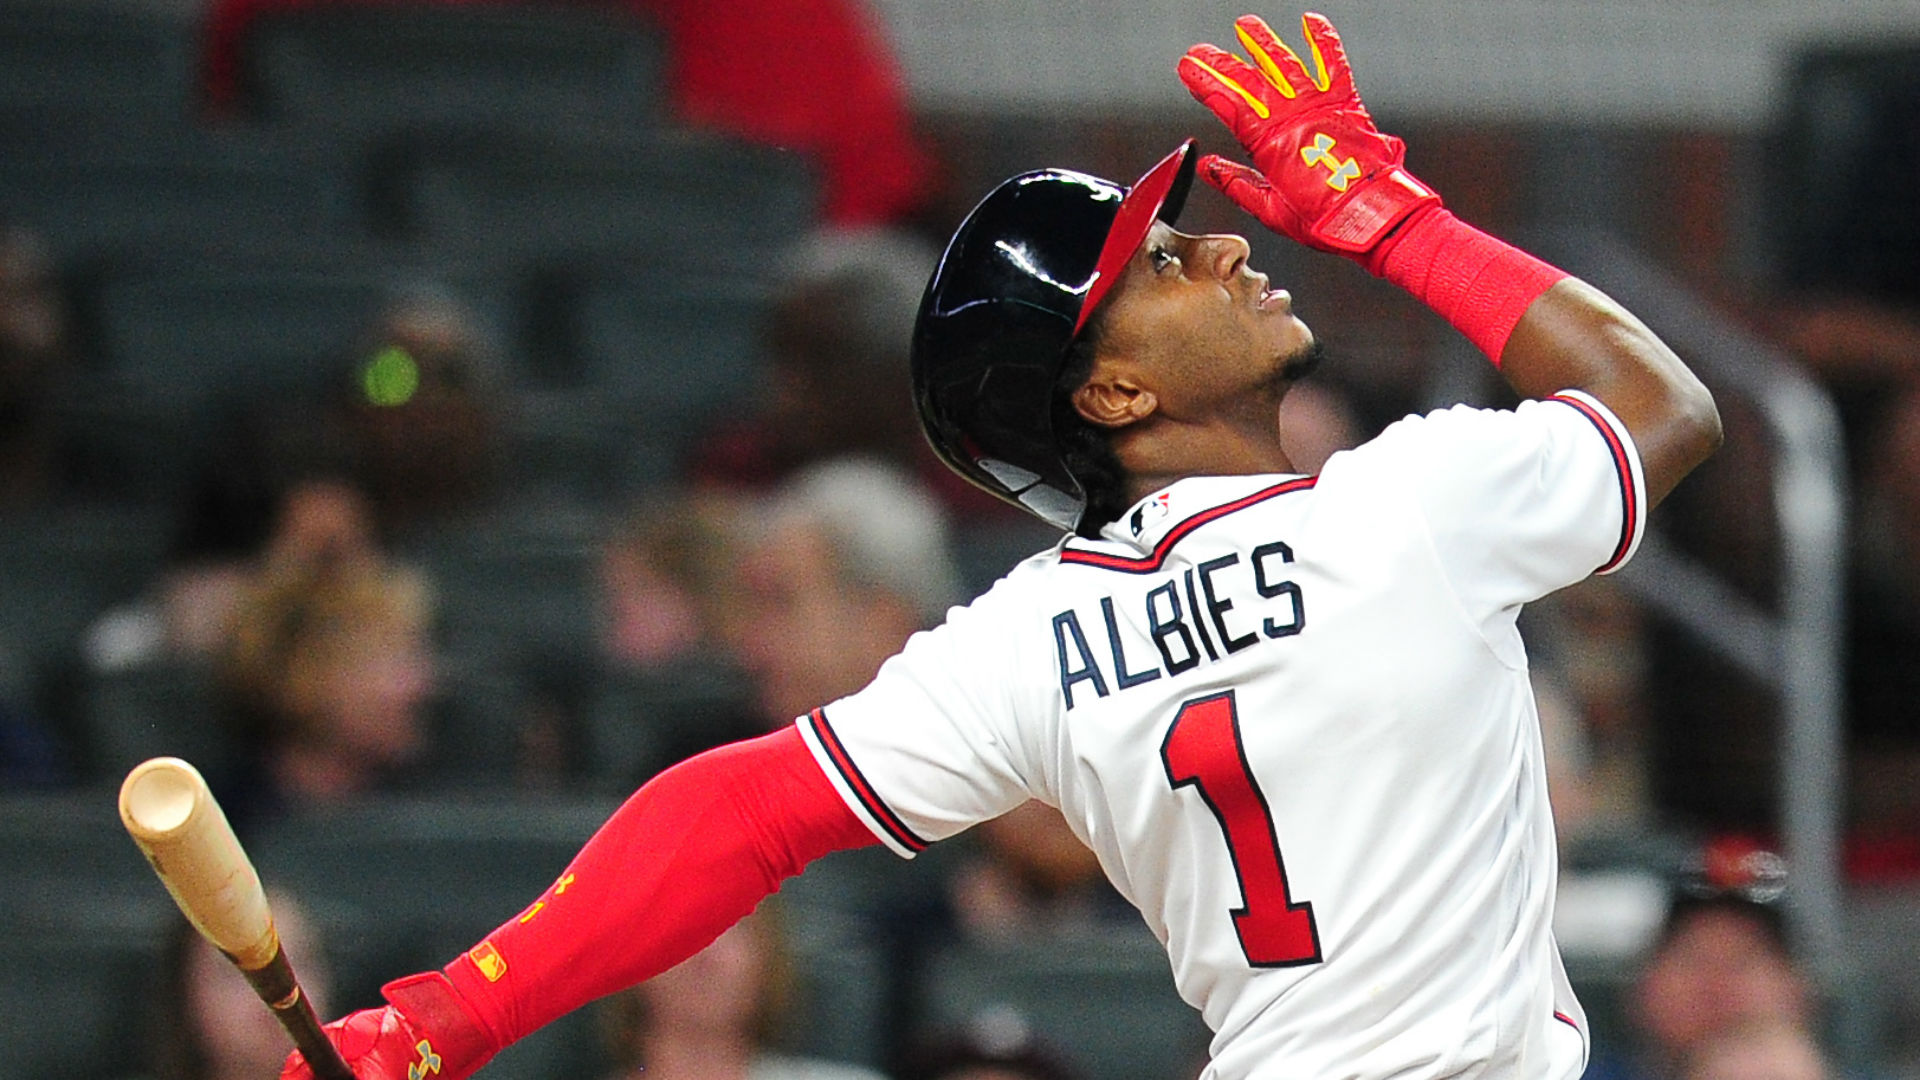 Ozzie Albies has been a big surprise for the Braves, but can his power surge continue?